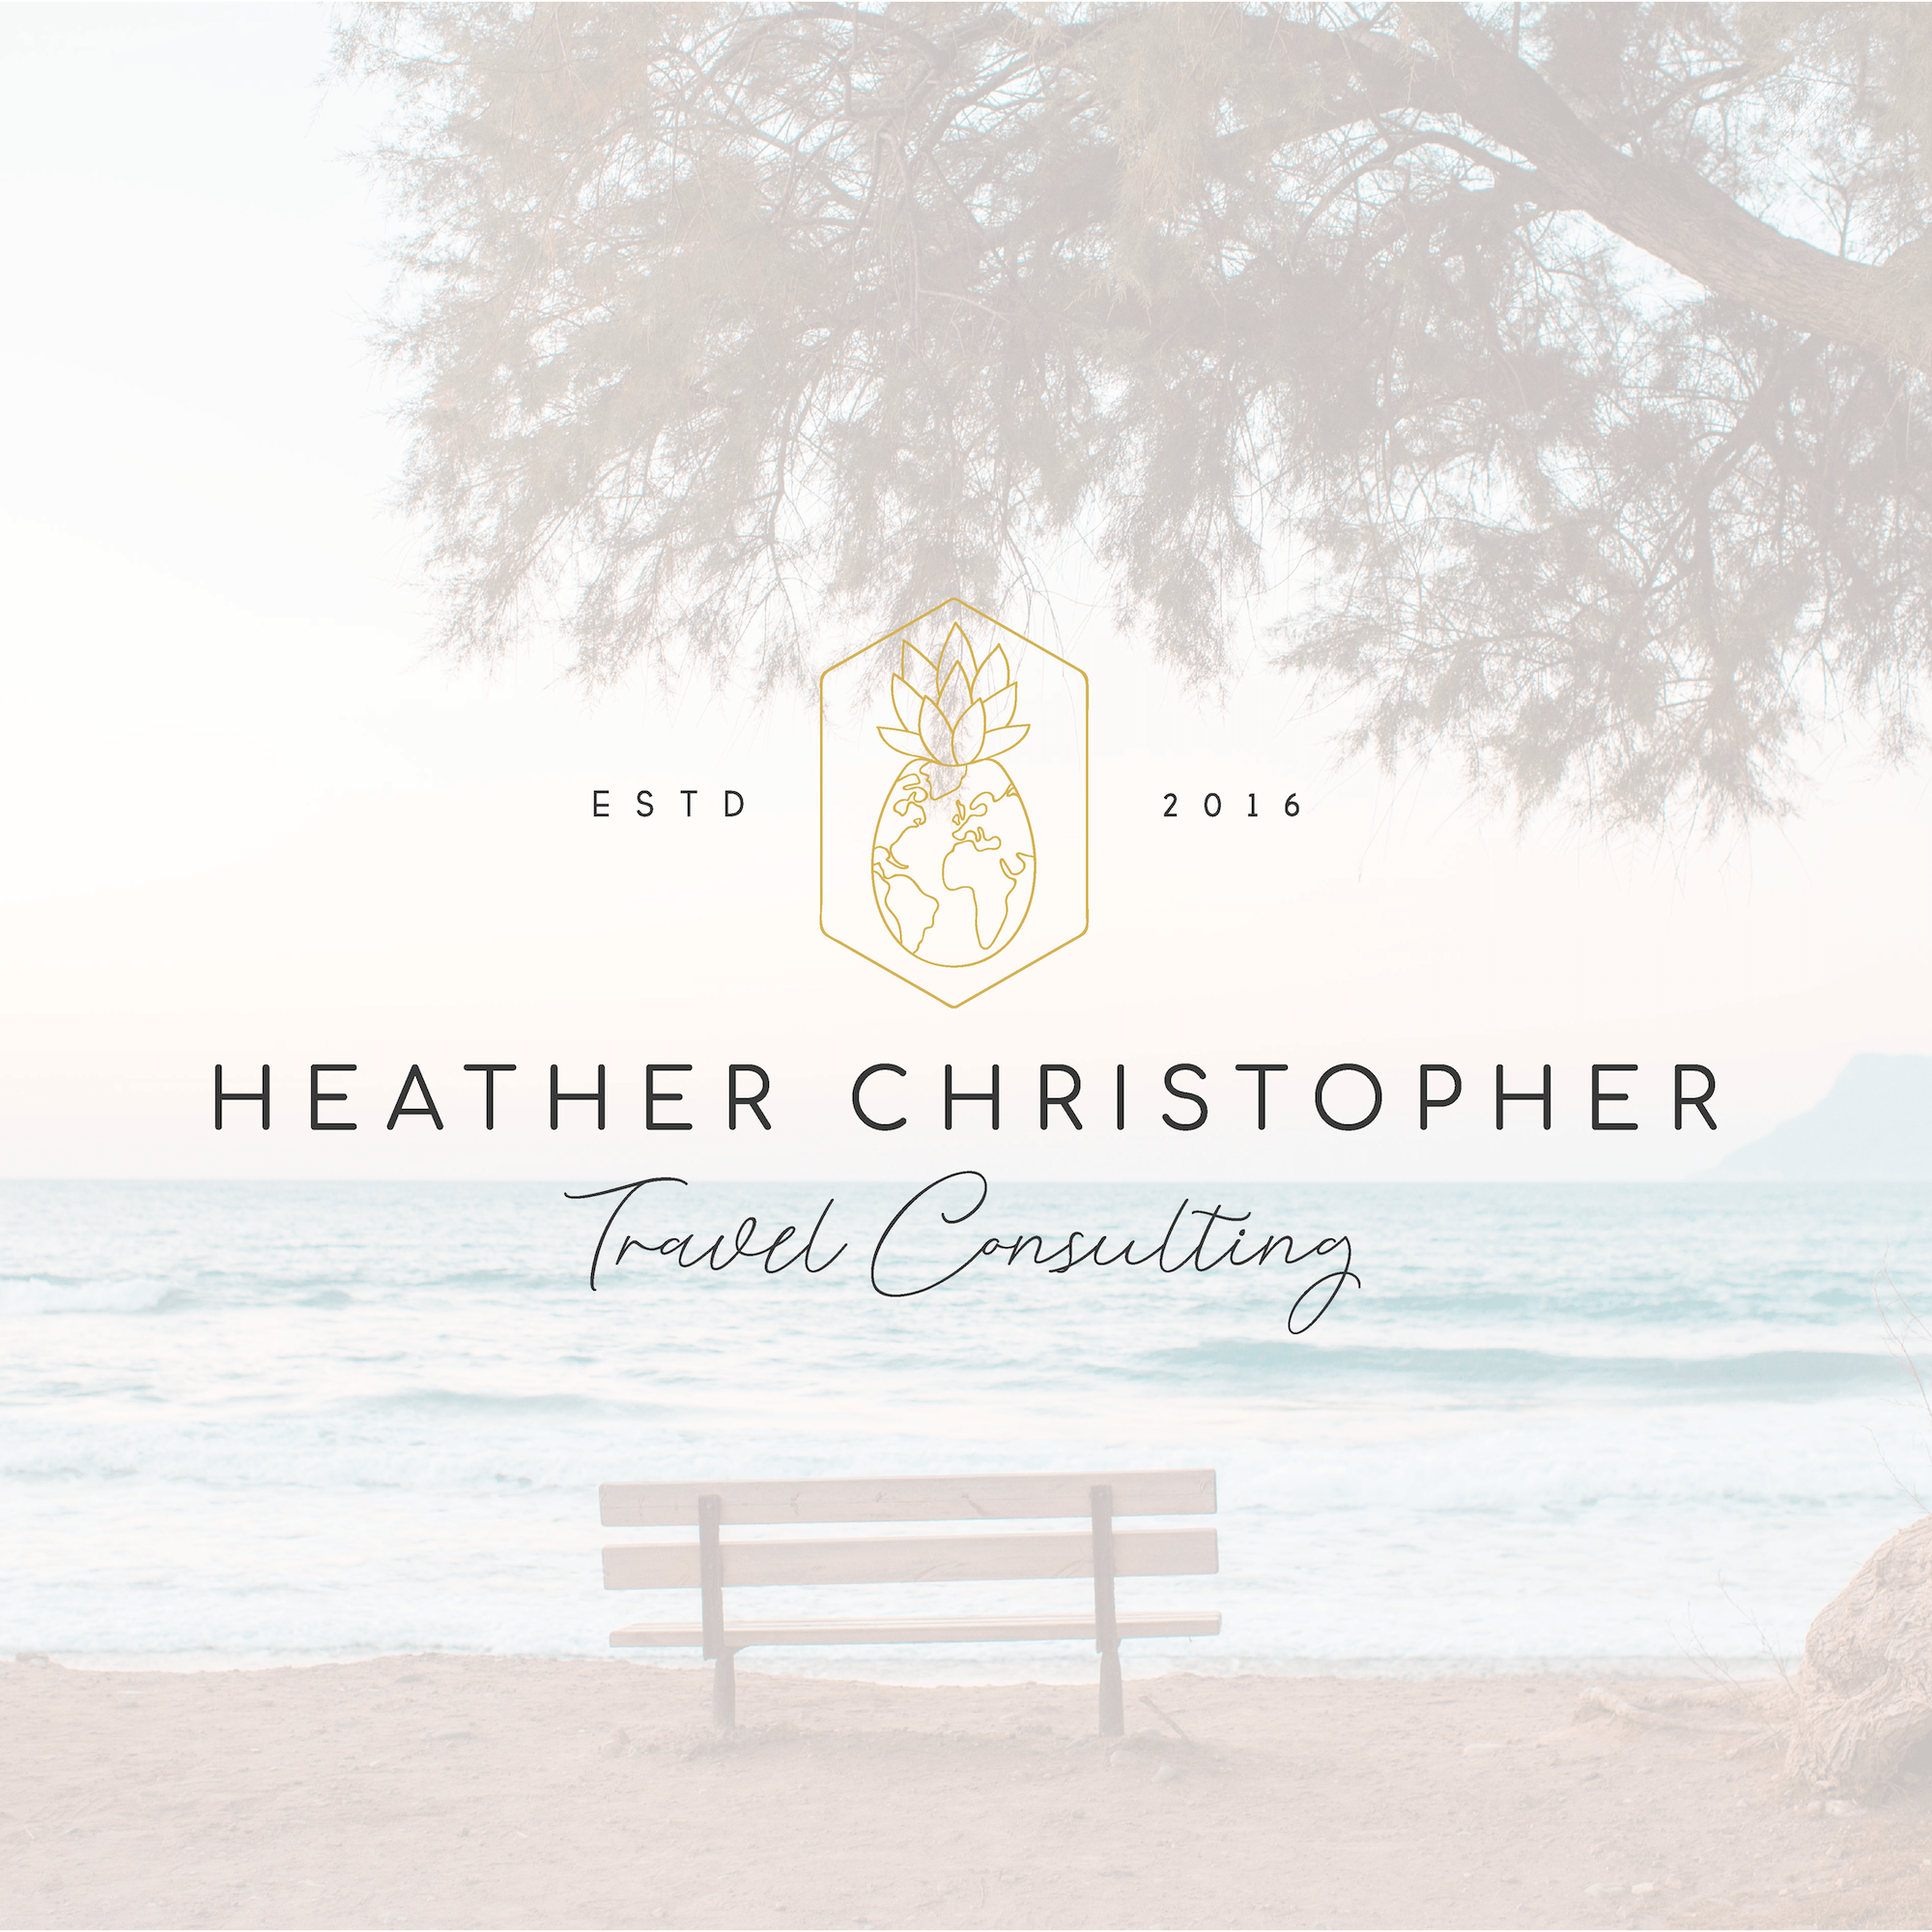 heather christopher travel consulting pennsylvania travel agent brand and logo design by kindly by kelsea